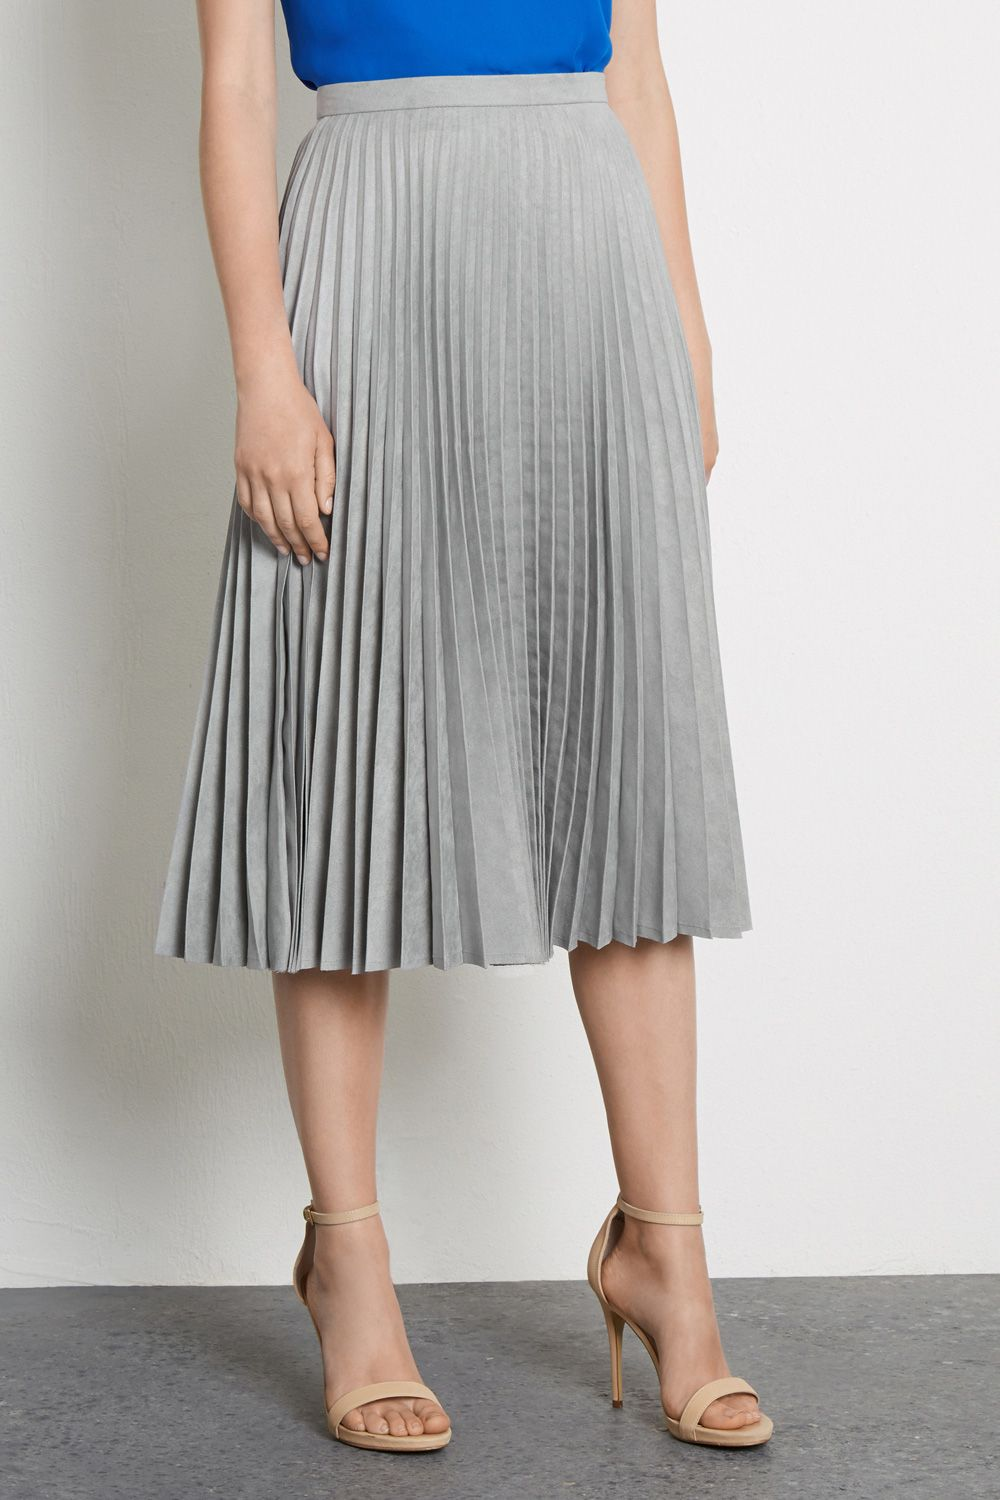 MOLESKIN PLEATED MIDI SKIRT | Fashion : Products | Pinterest ...